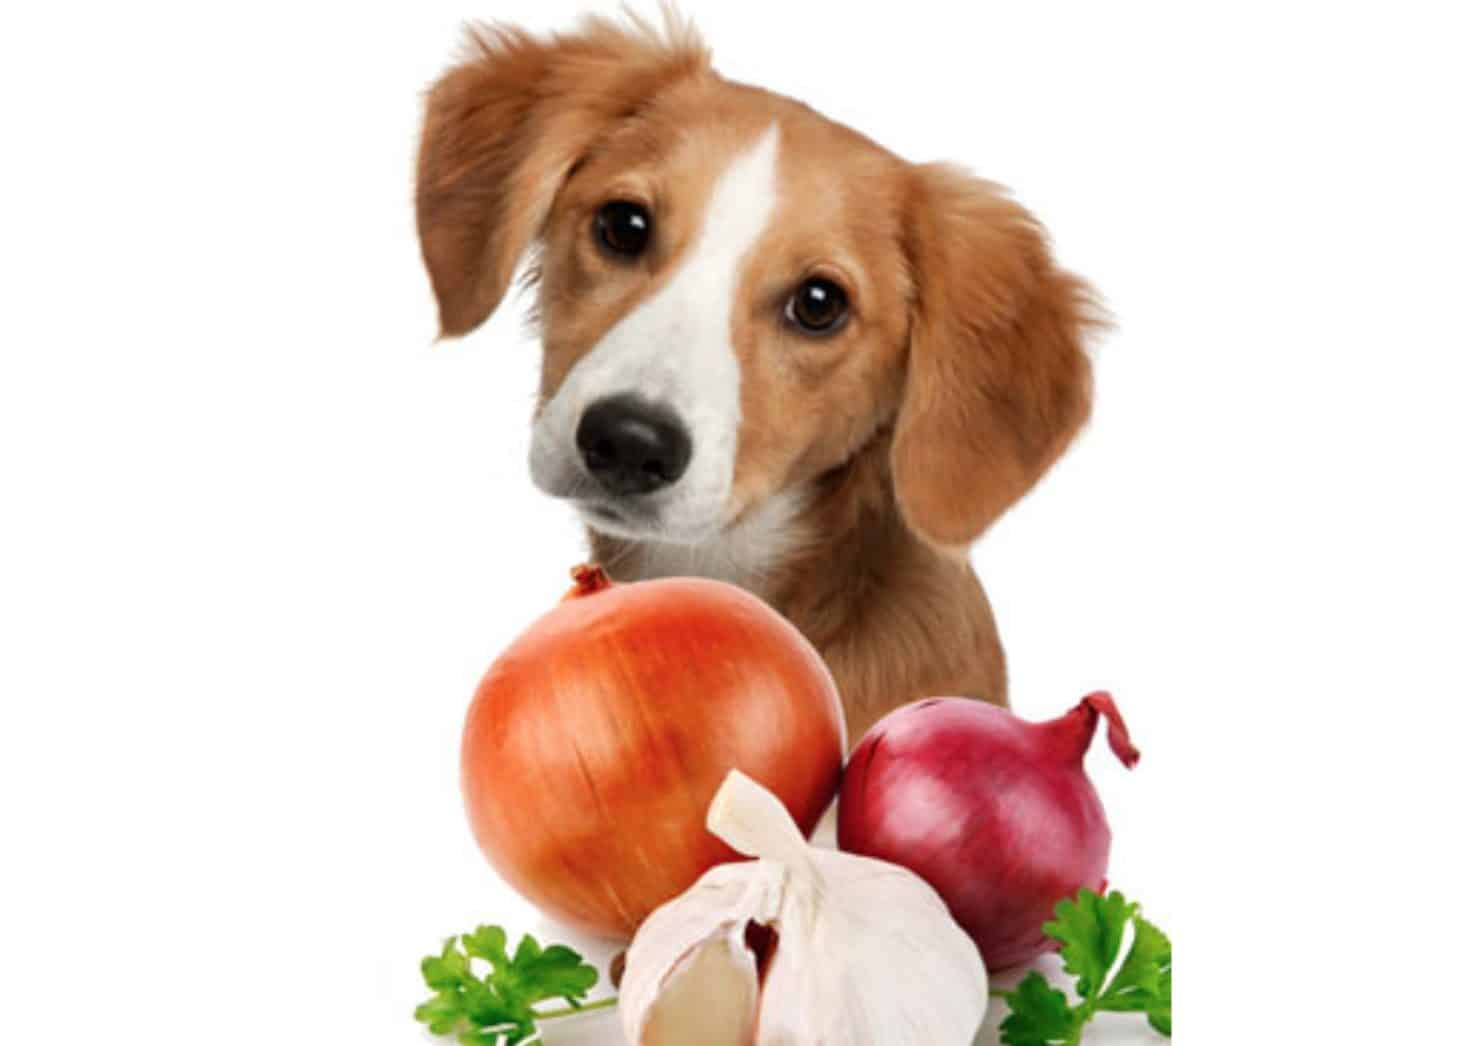 Dazzling Risks Re Are Tons Side Effects That May Occur If Your Dog Eatsenough Can Dogs Eat Side Effects Treatment Can Dogs Eat Avocado Or Lettuce Can Dogs Eat Avocado Oil bark post Can Dogs Eat Avocados